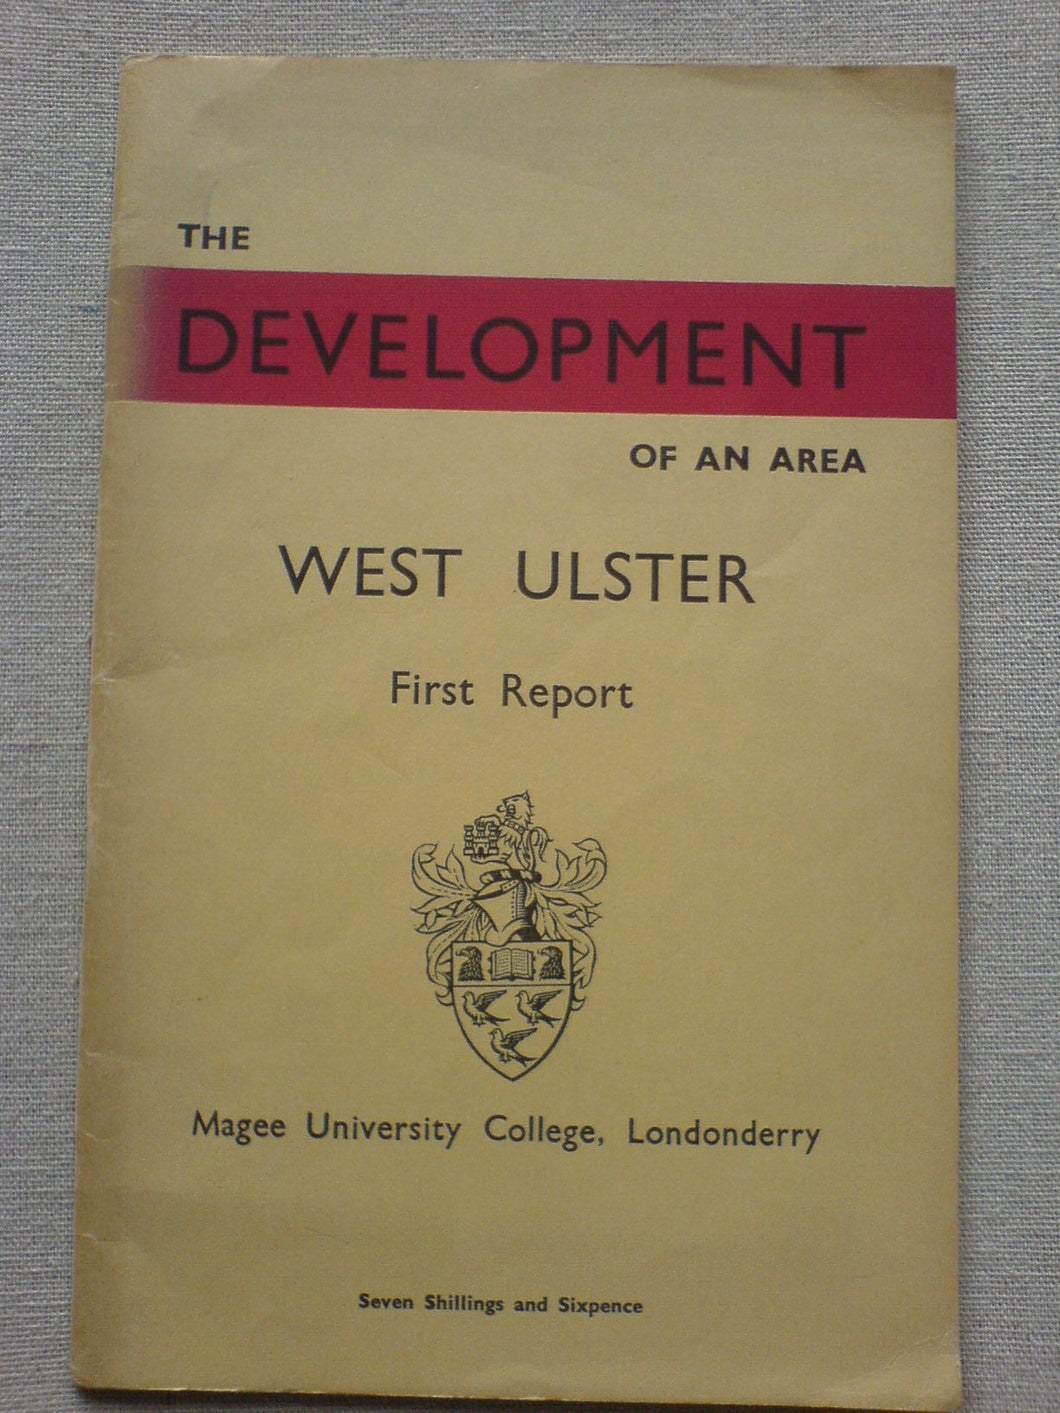 The Development of an Area - West Ulster - First Report